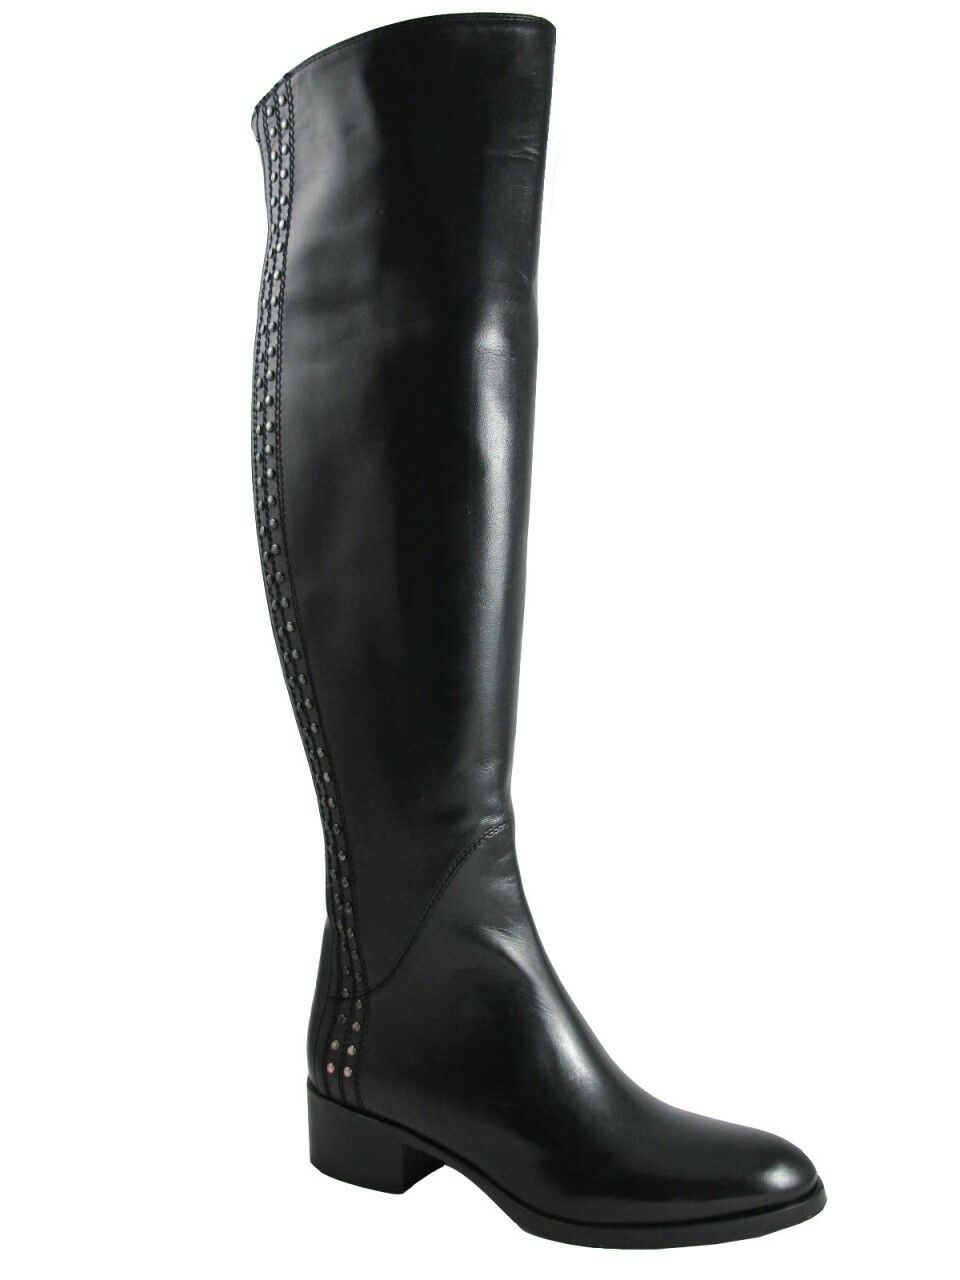 Le Pepe 417467 Women's Knee high Boot